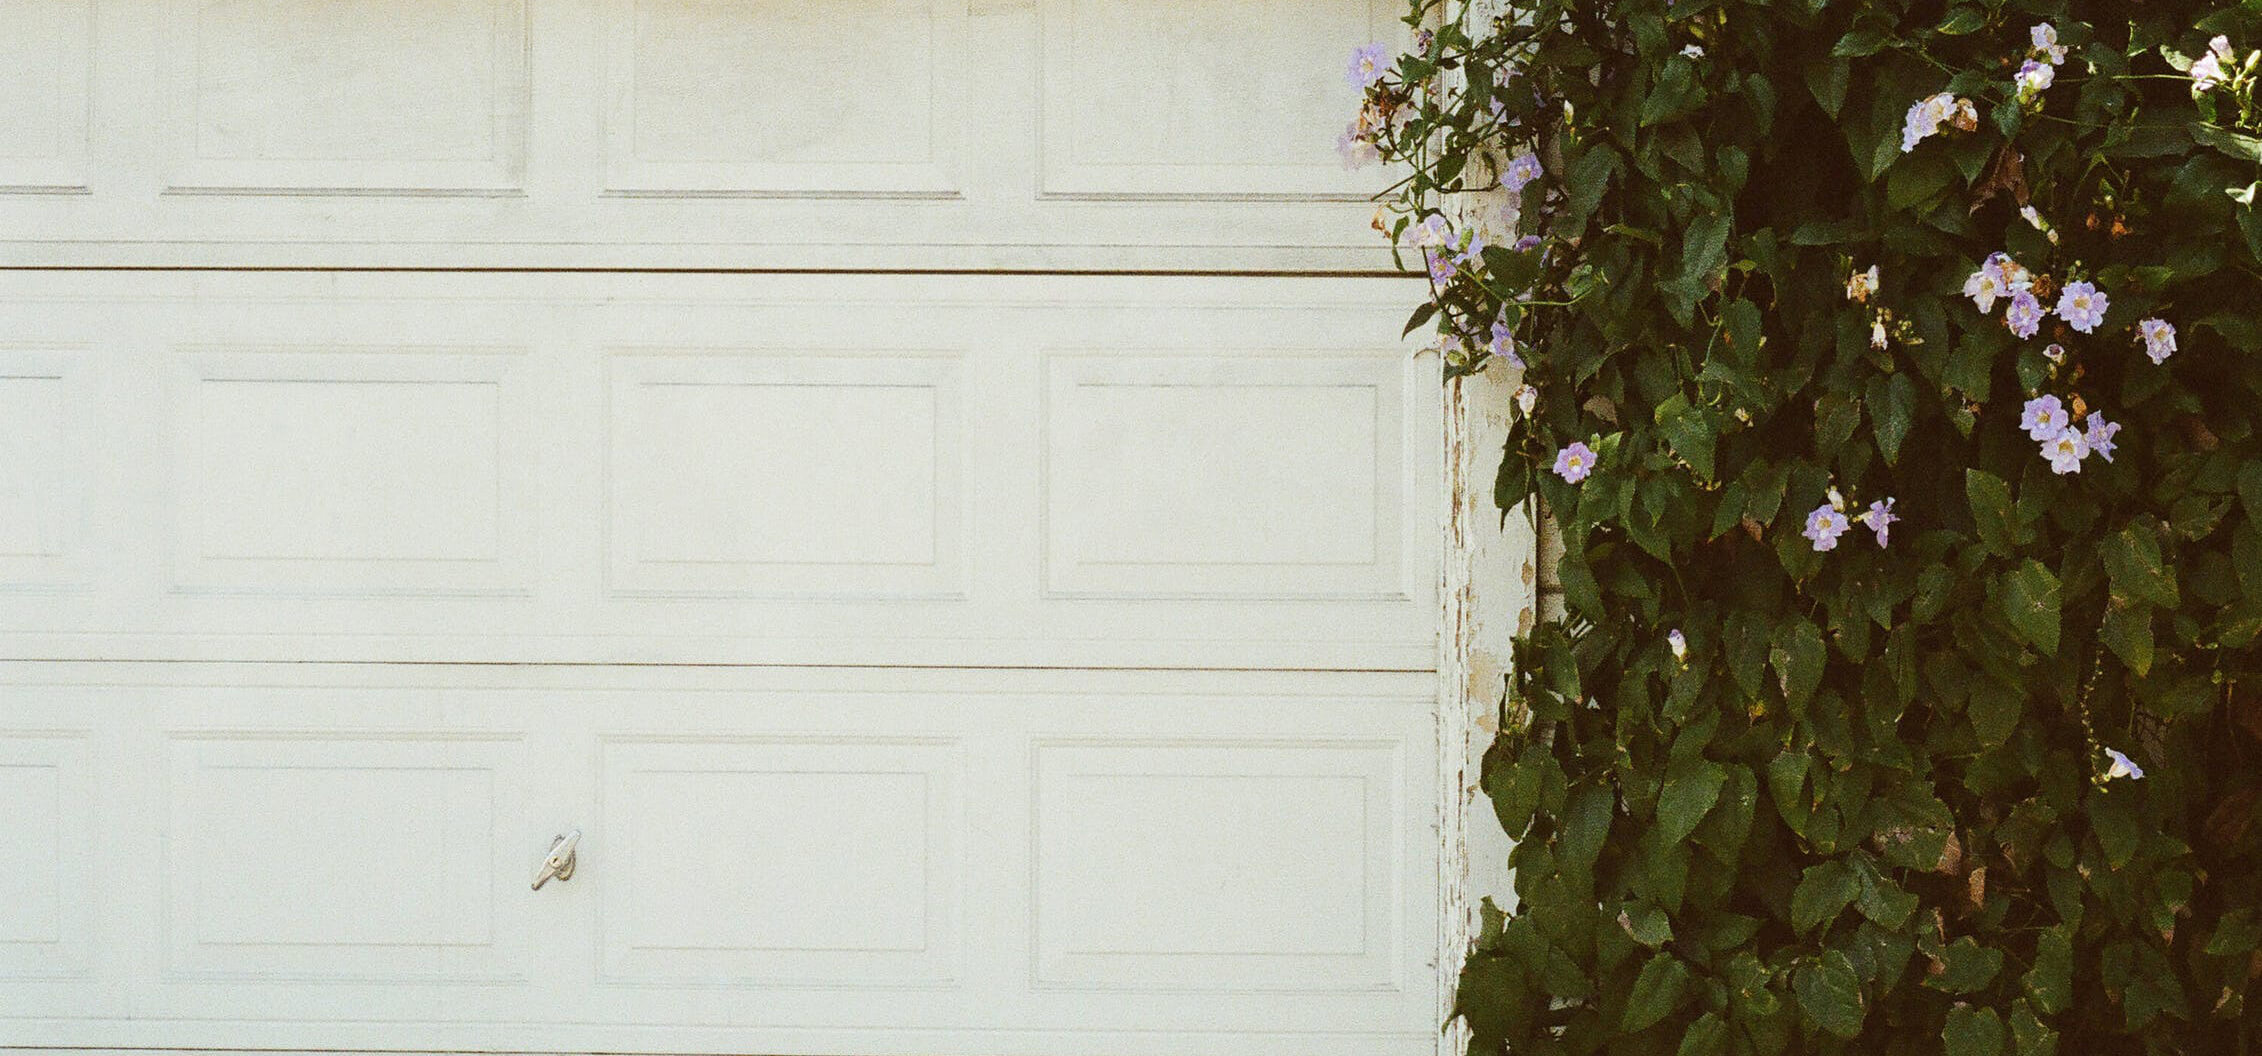 6-questions-you-need-to-ask-before-you-install-a-new-garage-door-2.jpg